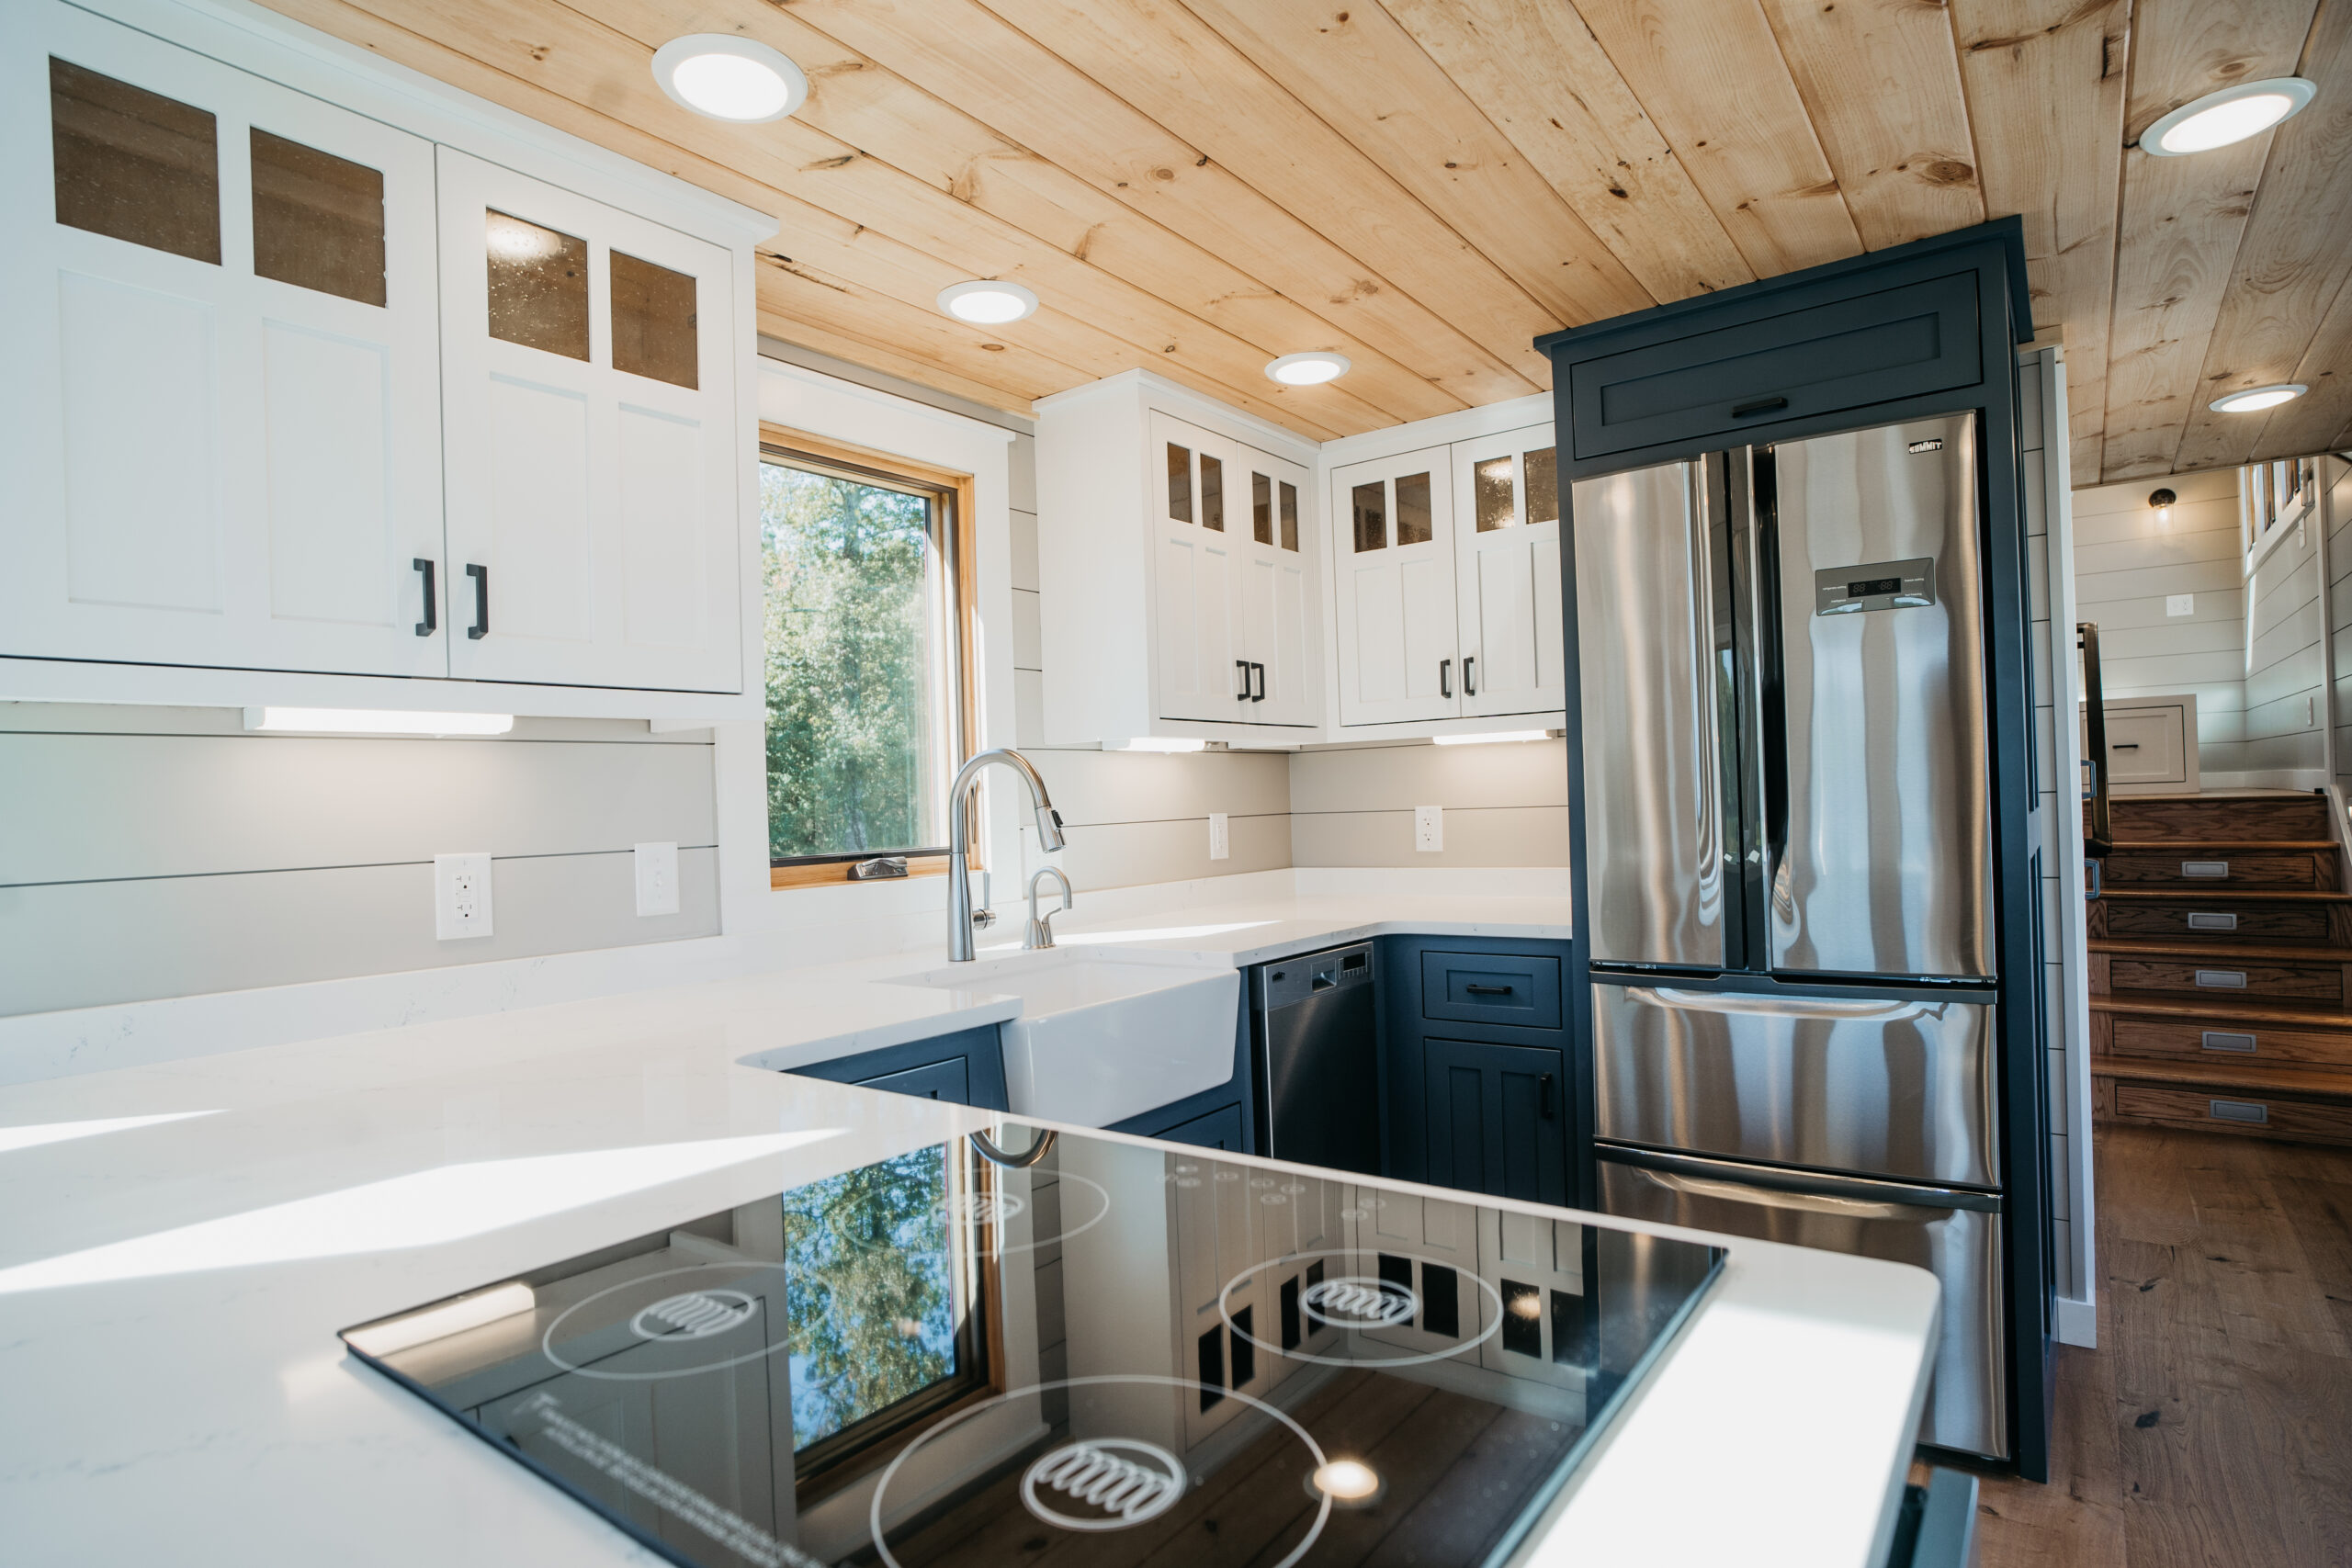 Tiny house kitchen in blue